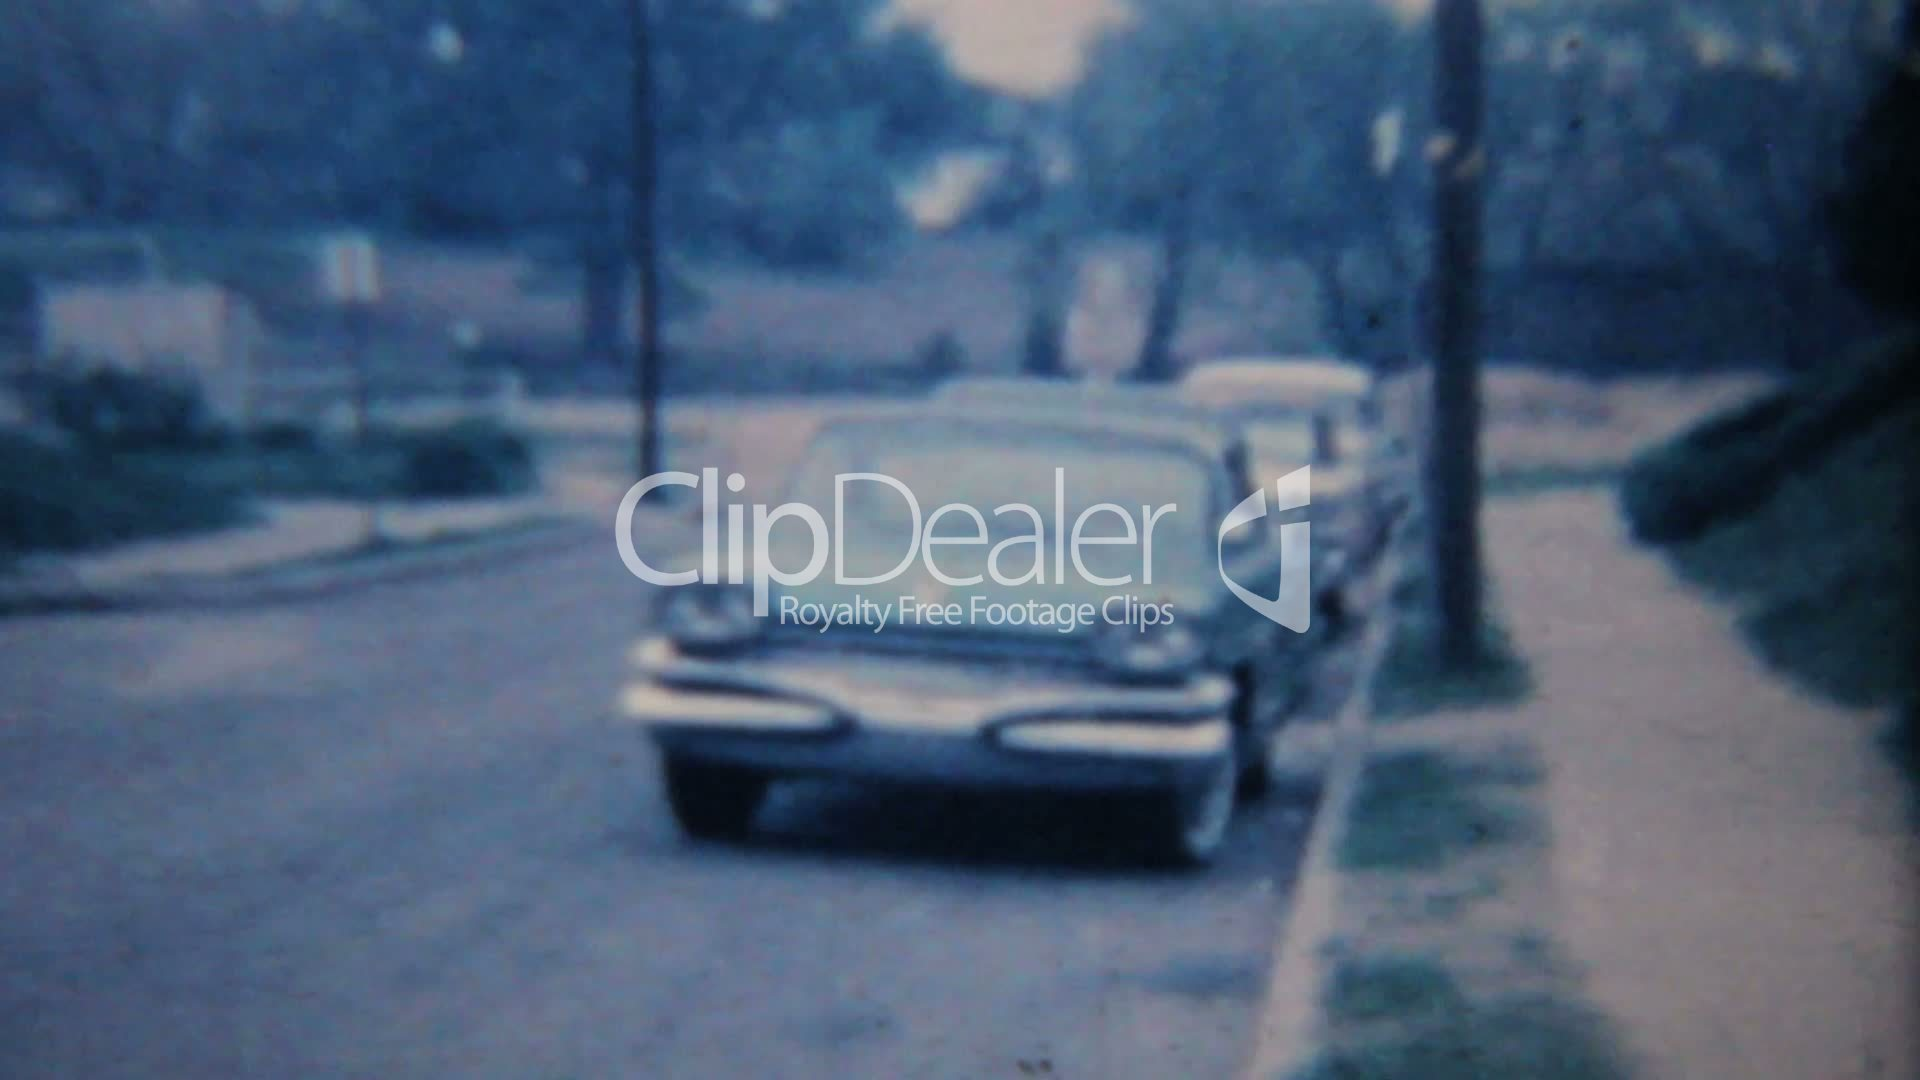 Old Car-1964 Vintage 8mm film: Royalty-free video and stock footage